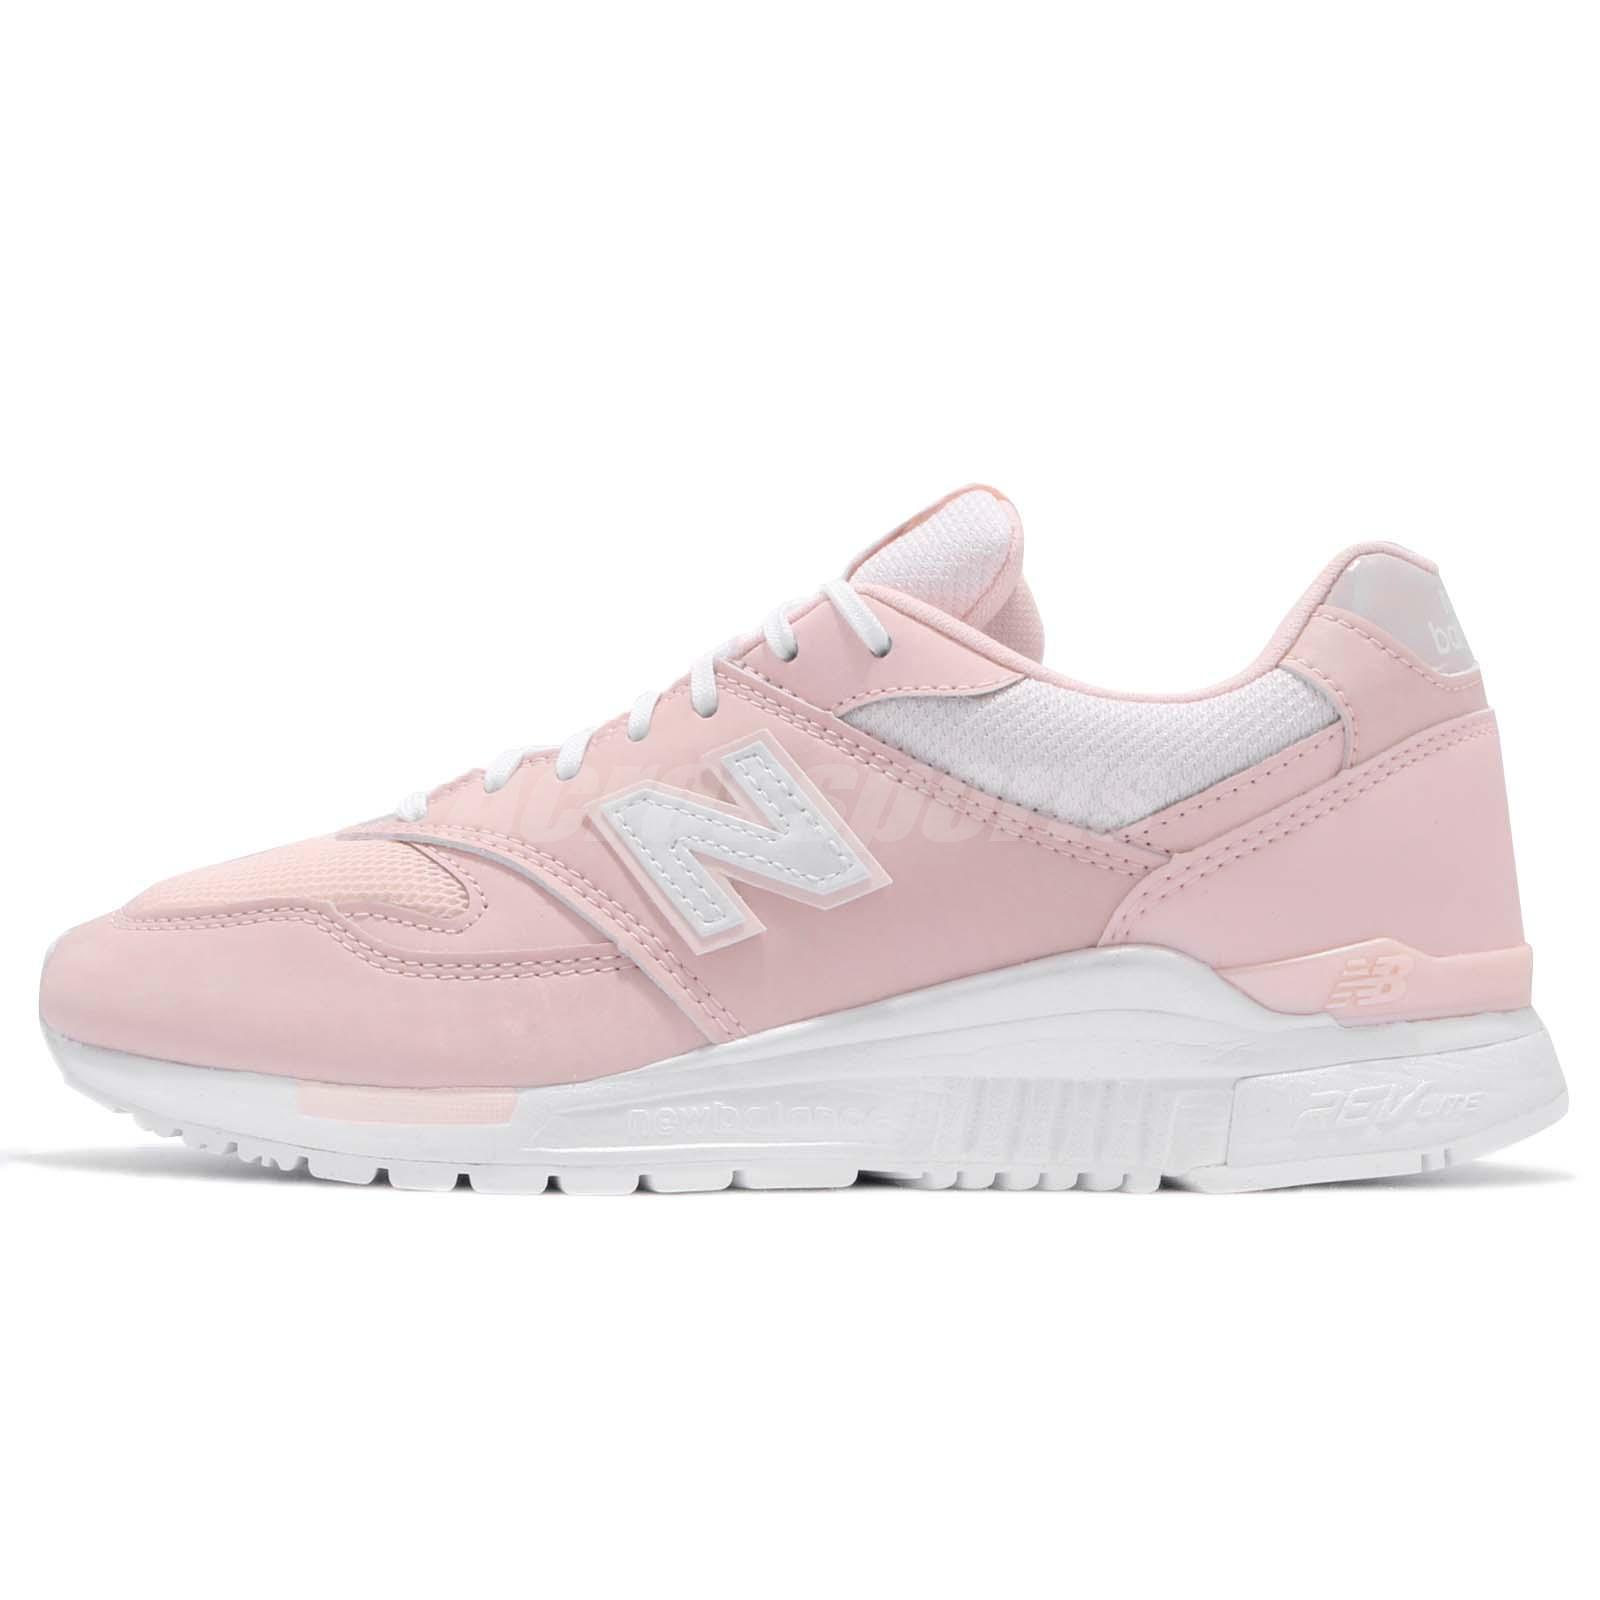 sneakers uomo new balance 840